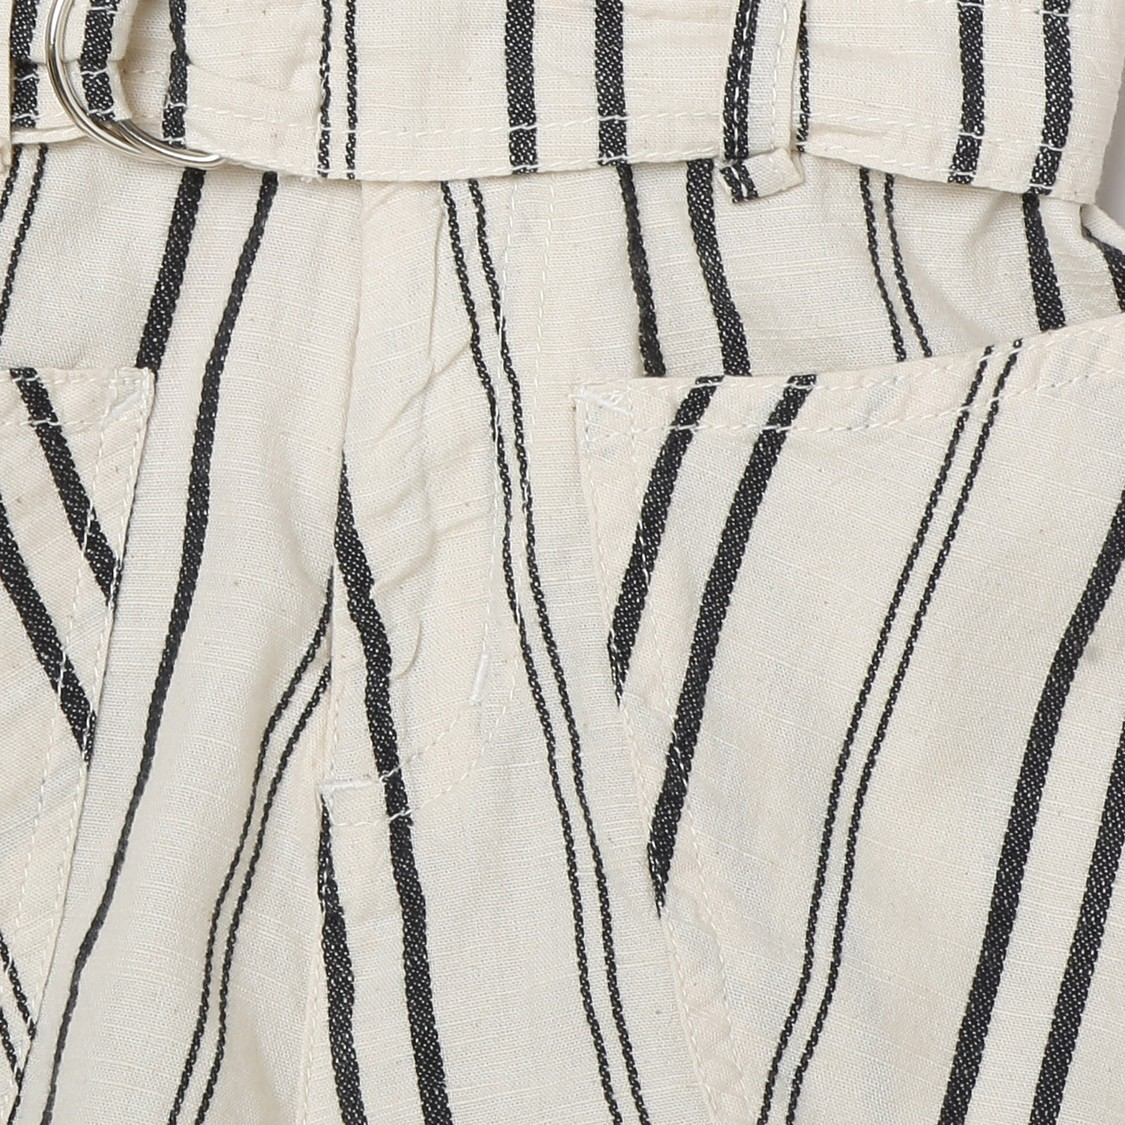 MAX Striped Elasticated Woven Shorts